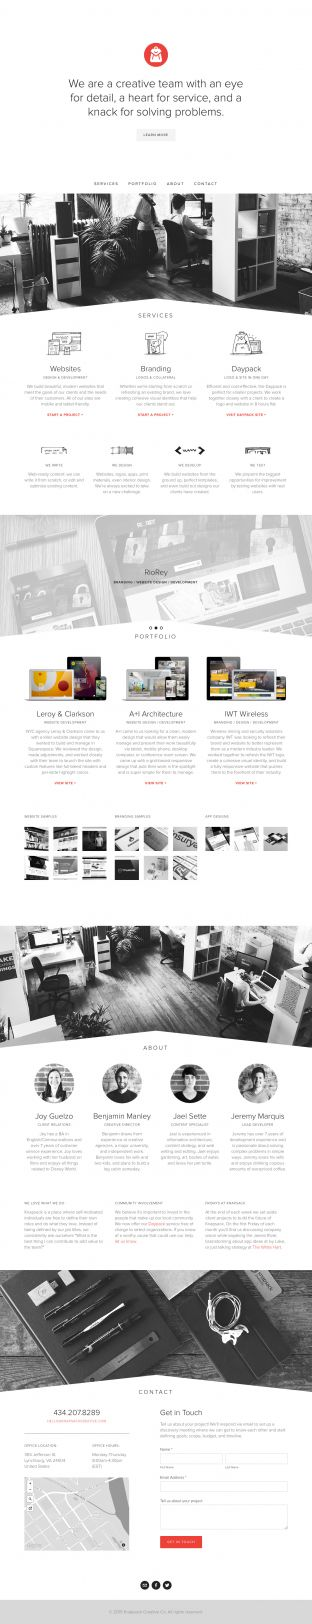 Knapsack Creative - Website Design and Development